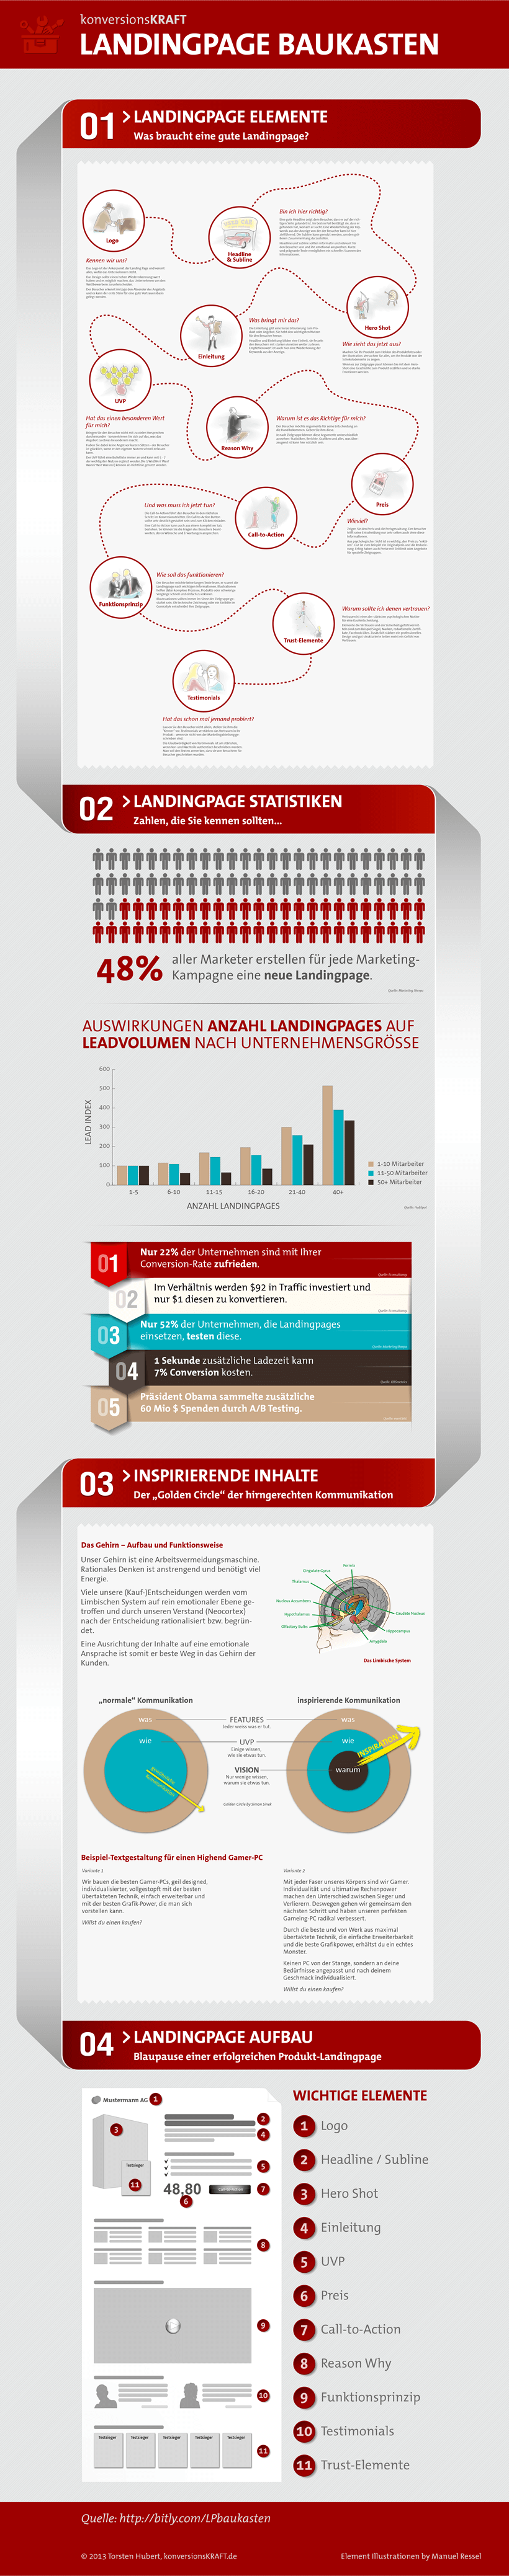 Infografik zum Thema Landing-Pages